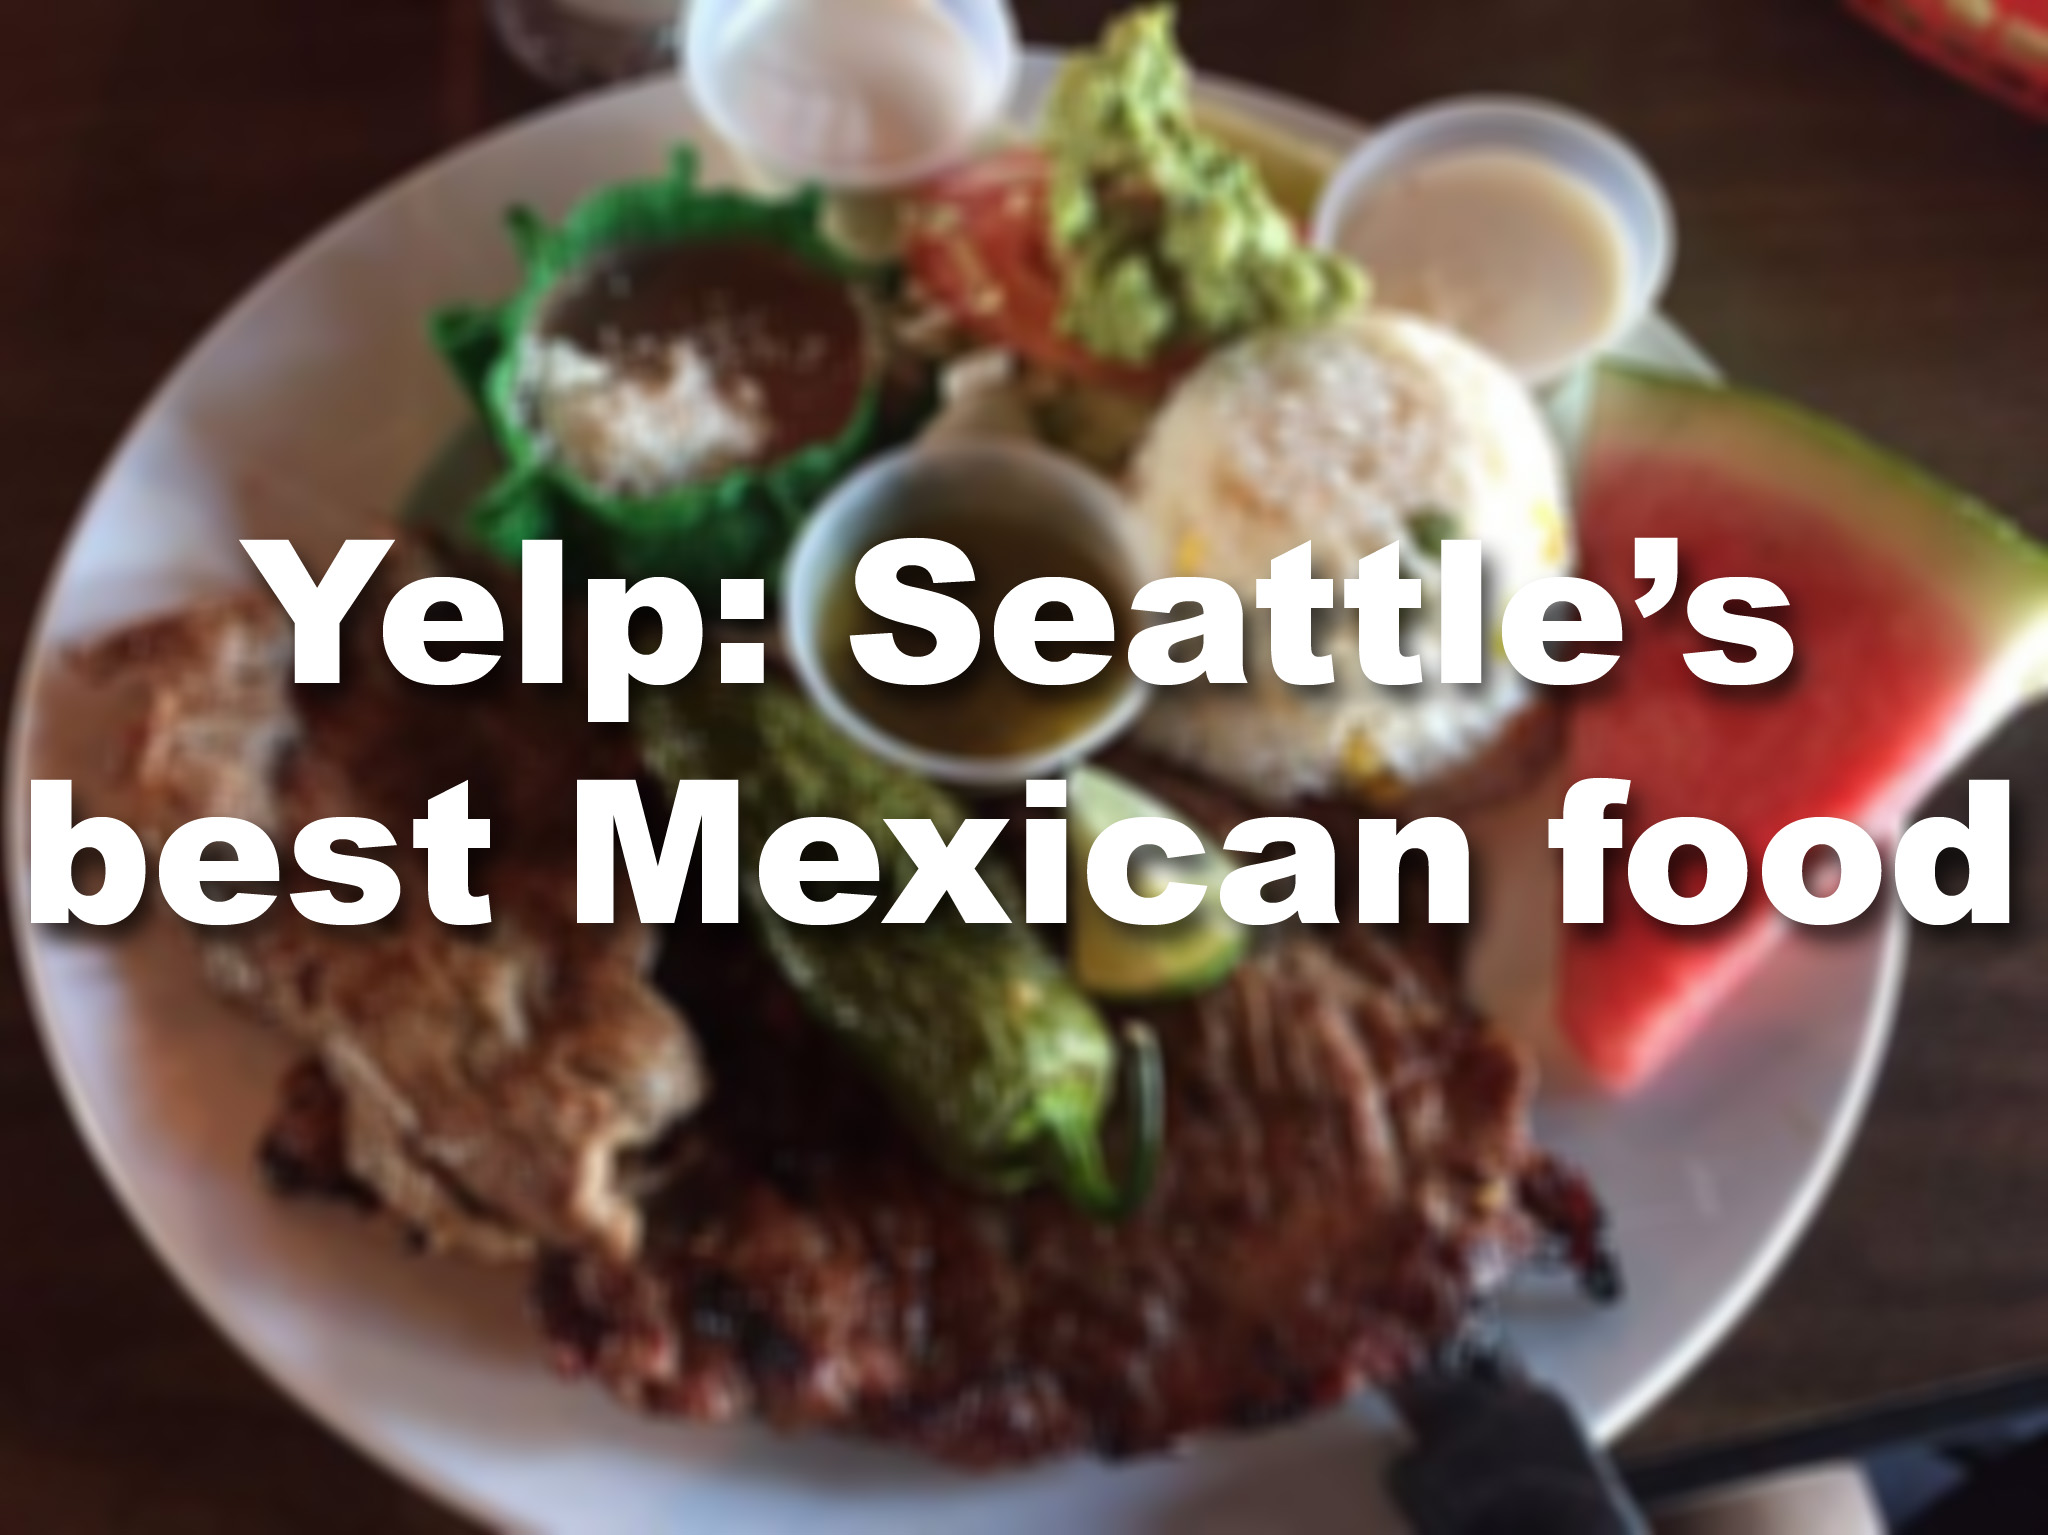 Seattle's best Mexican food, according to Yelpers ...